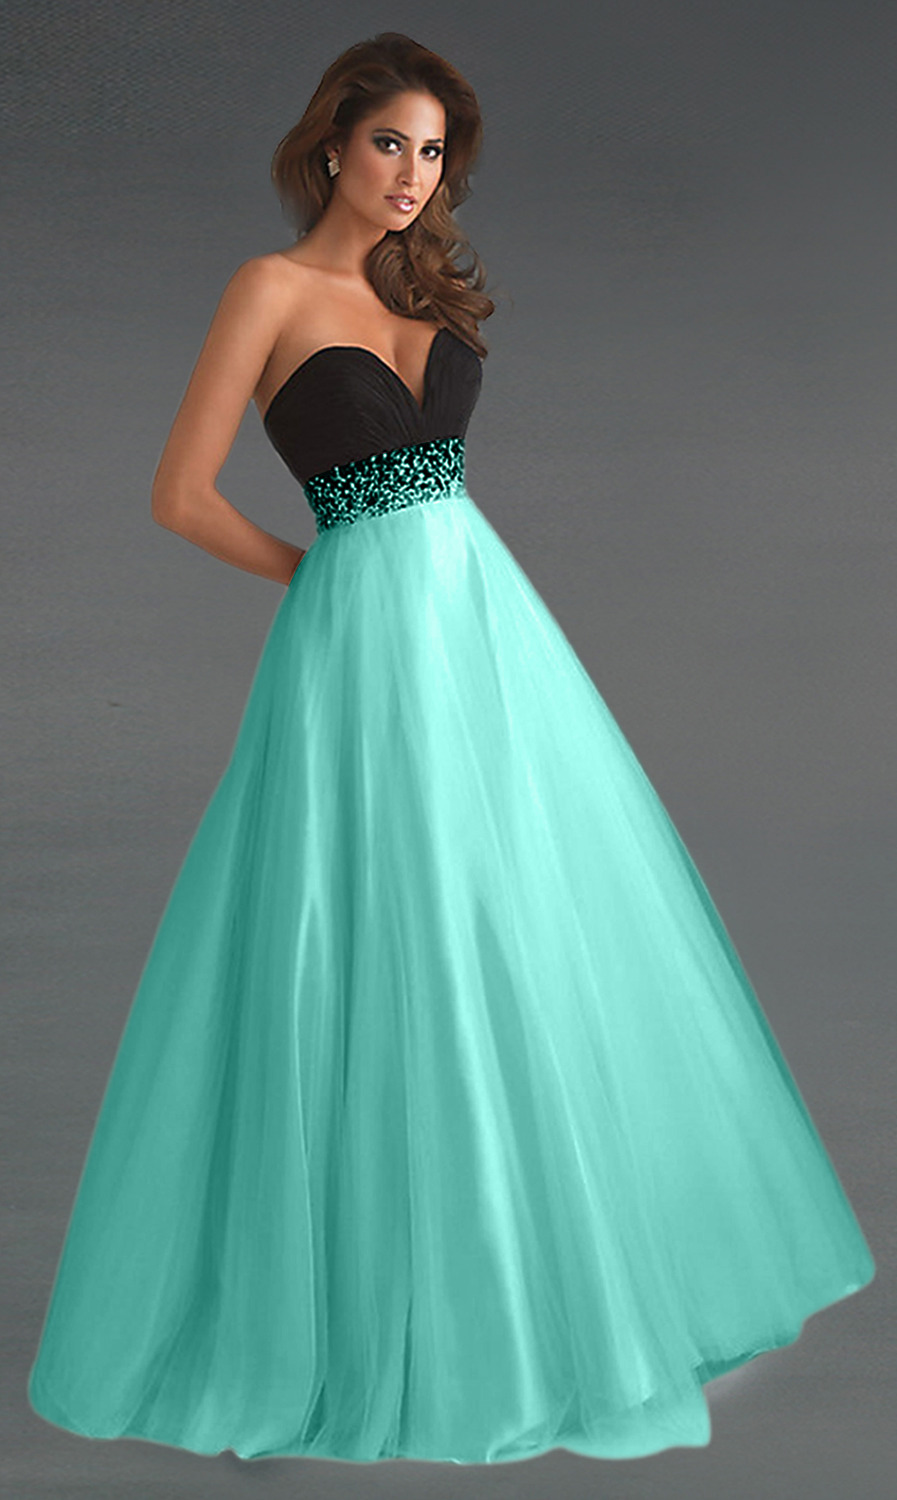 Different Types of Beautiful Long Prom Dresses | dresses | Pinterest ...